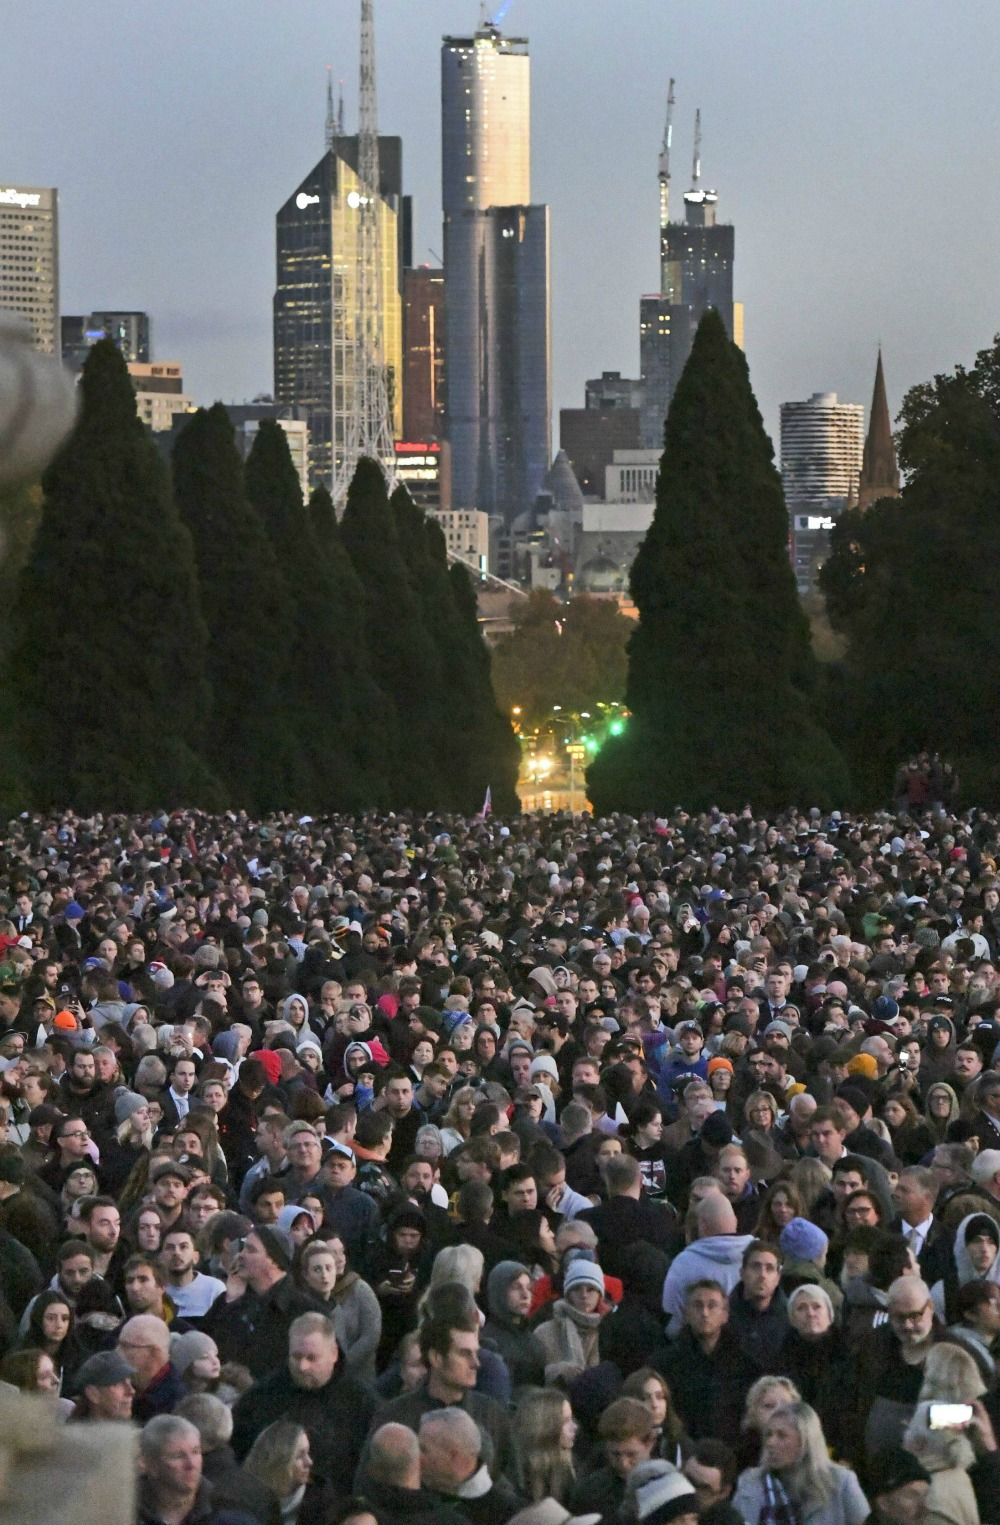 Thousands gathered in Melbourne for the service. Source: Getty.